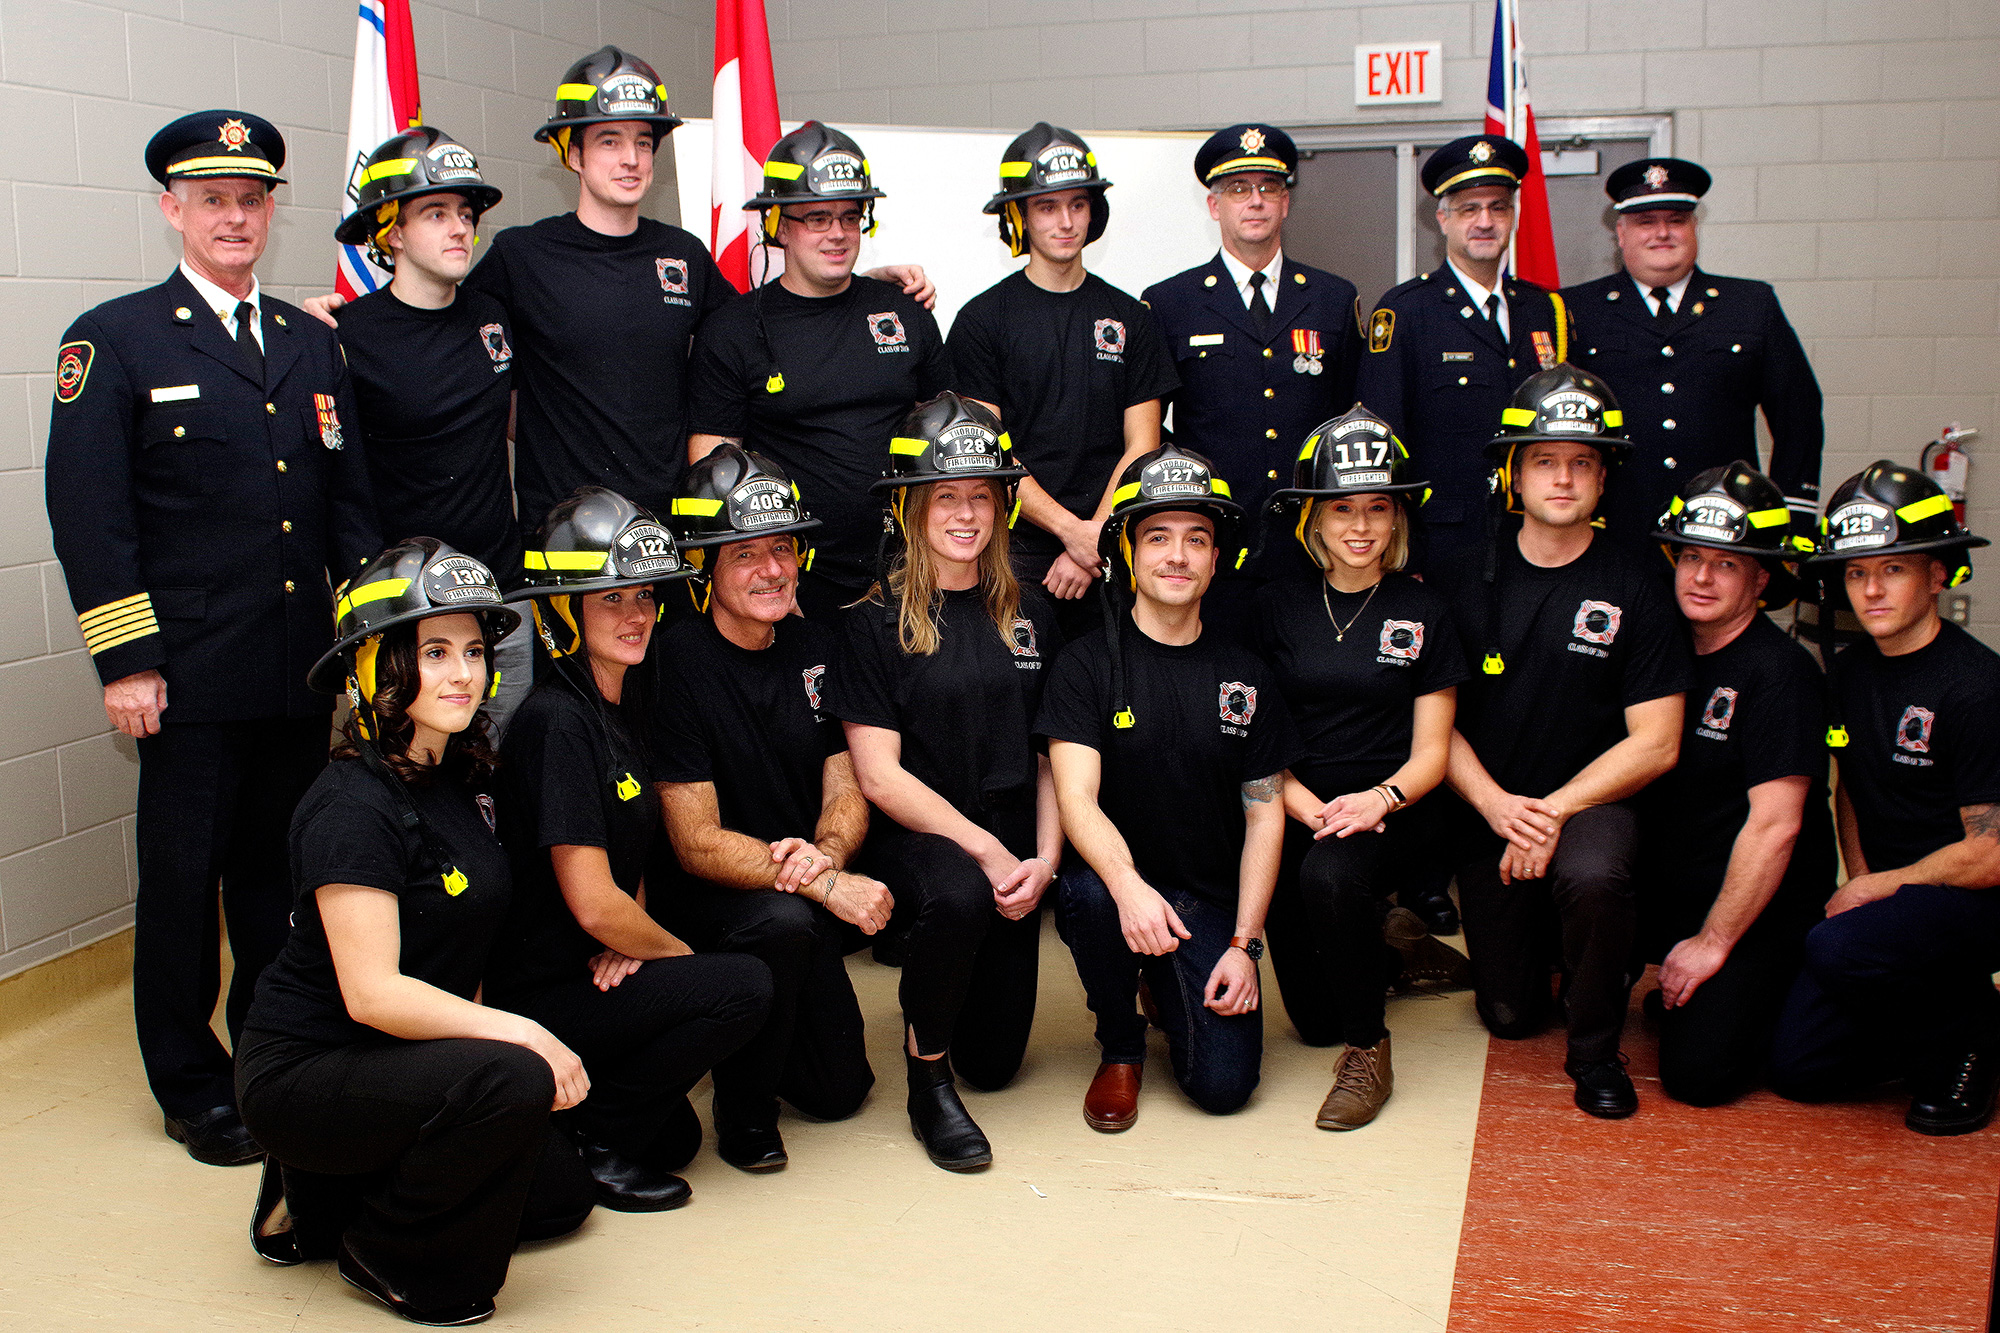 Thorold welcomes new firefighters (17 photos) - ThoroldNews.com